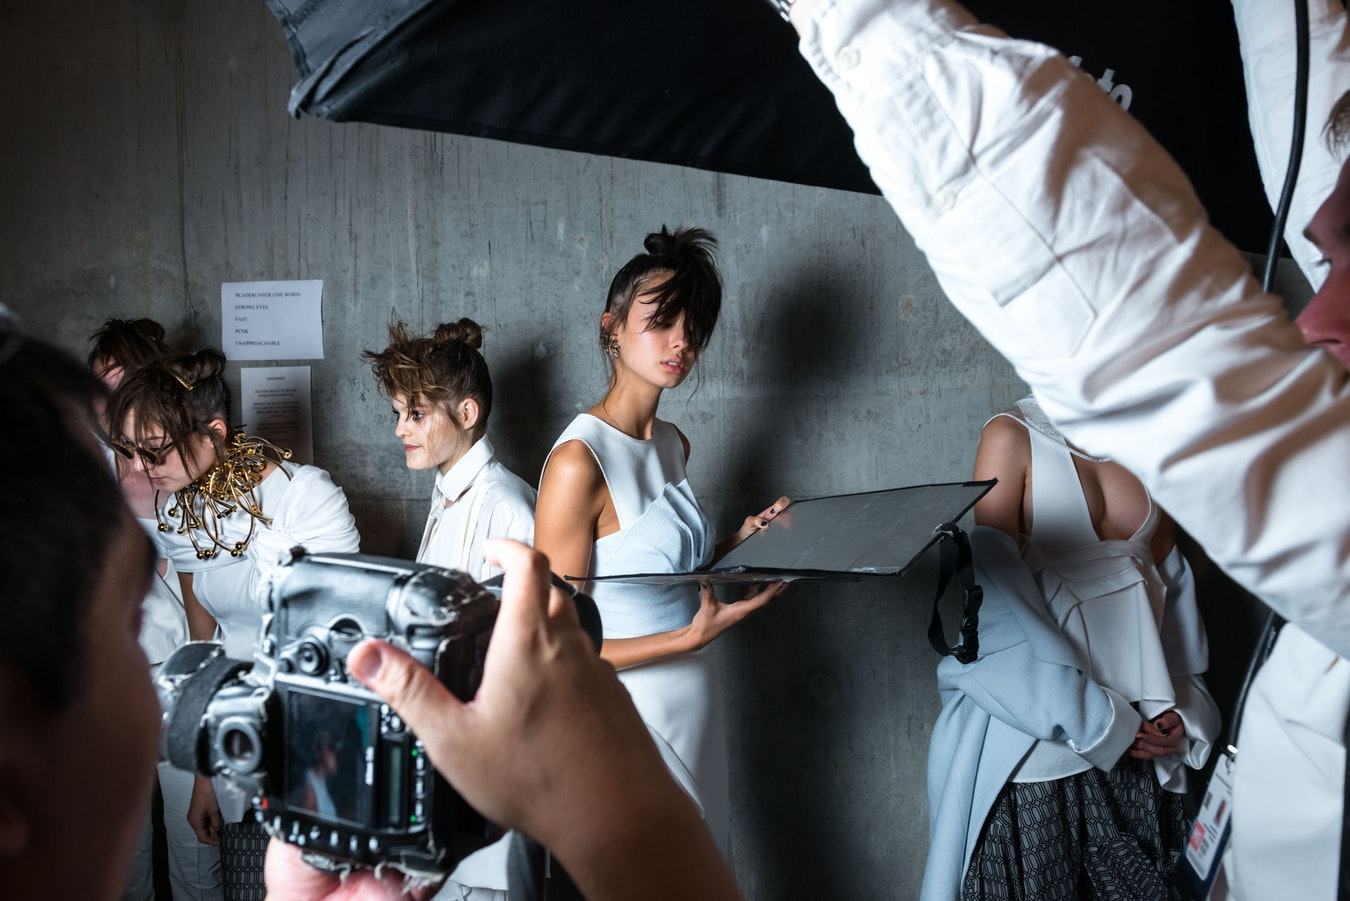 Image thumbnail to represent blog post Marketing your brand – The Commercial Photoshoot (Part 3 – The Photoshoot)